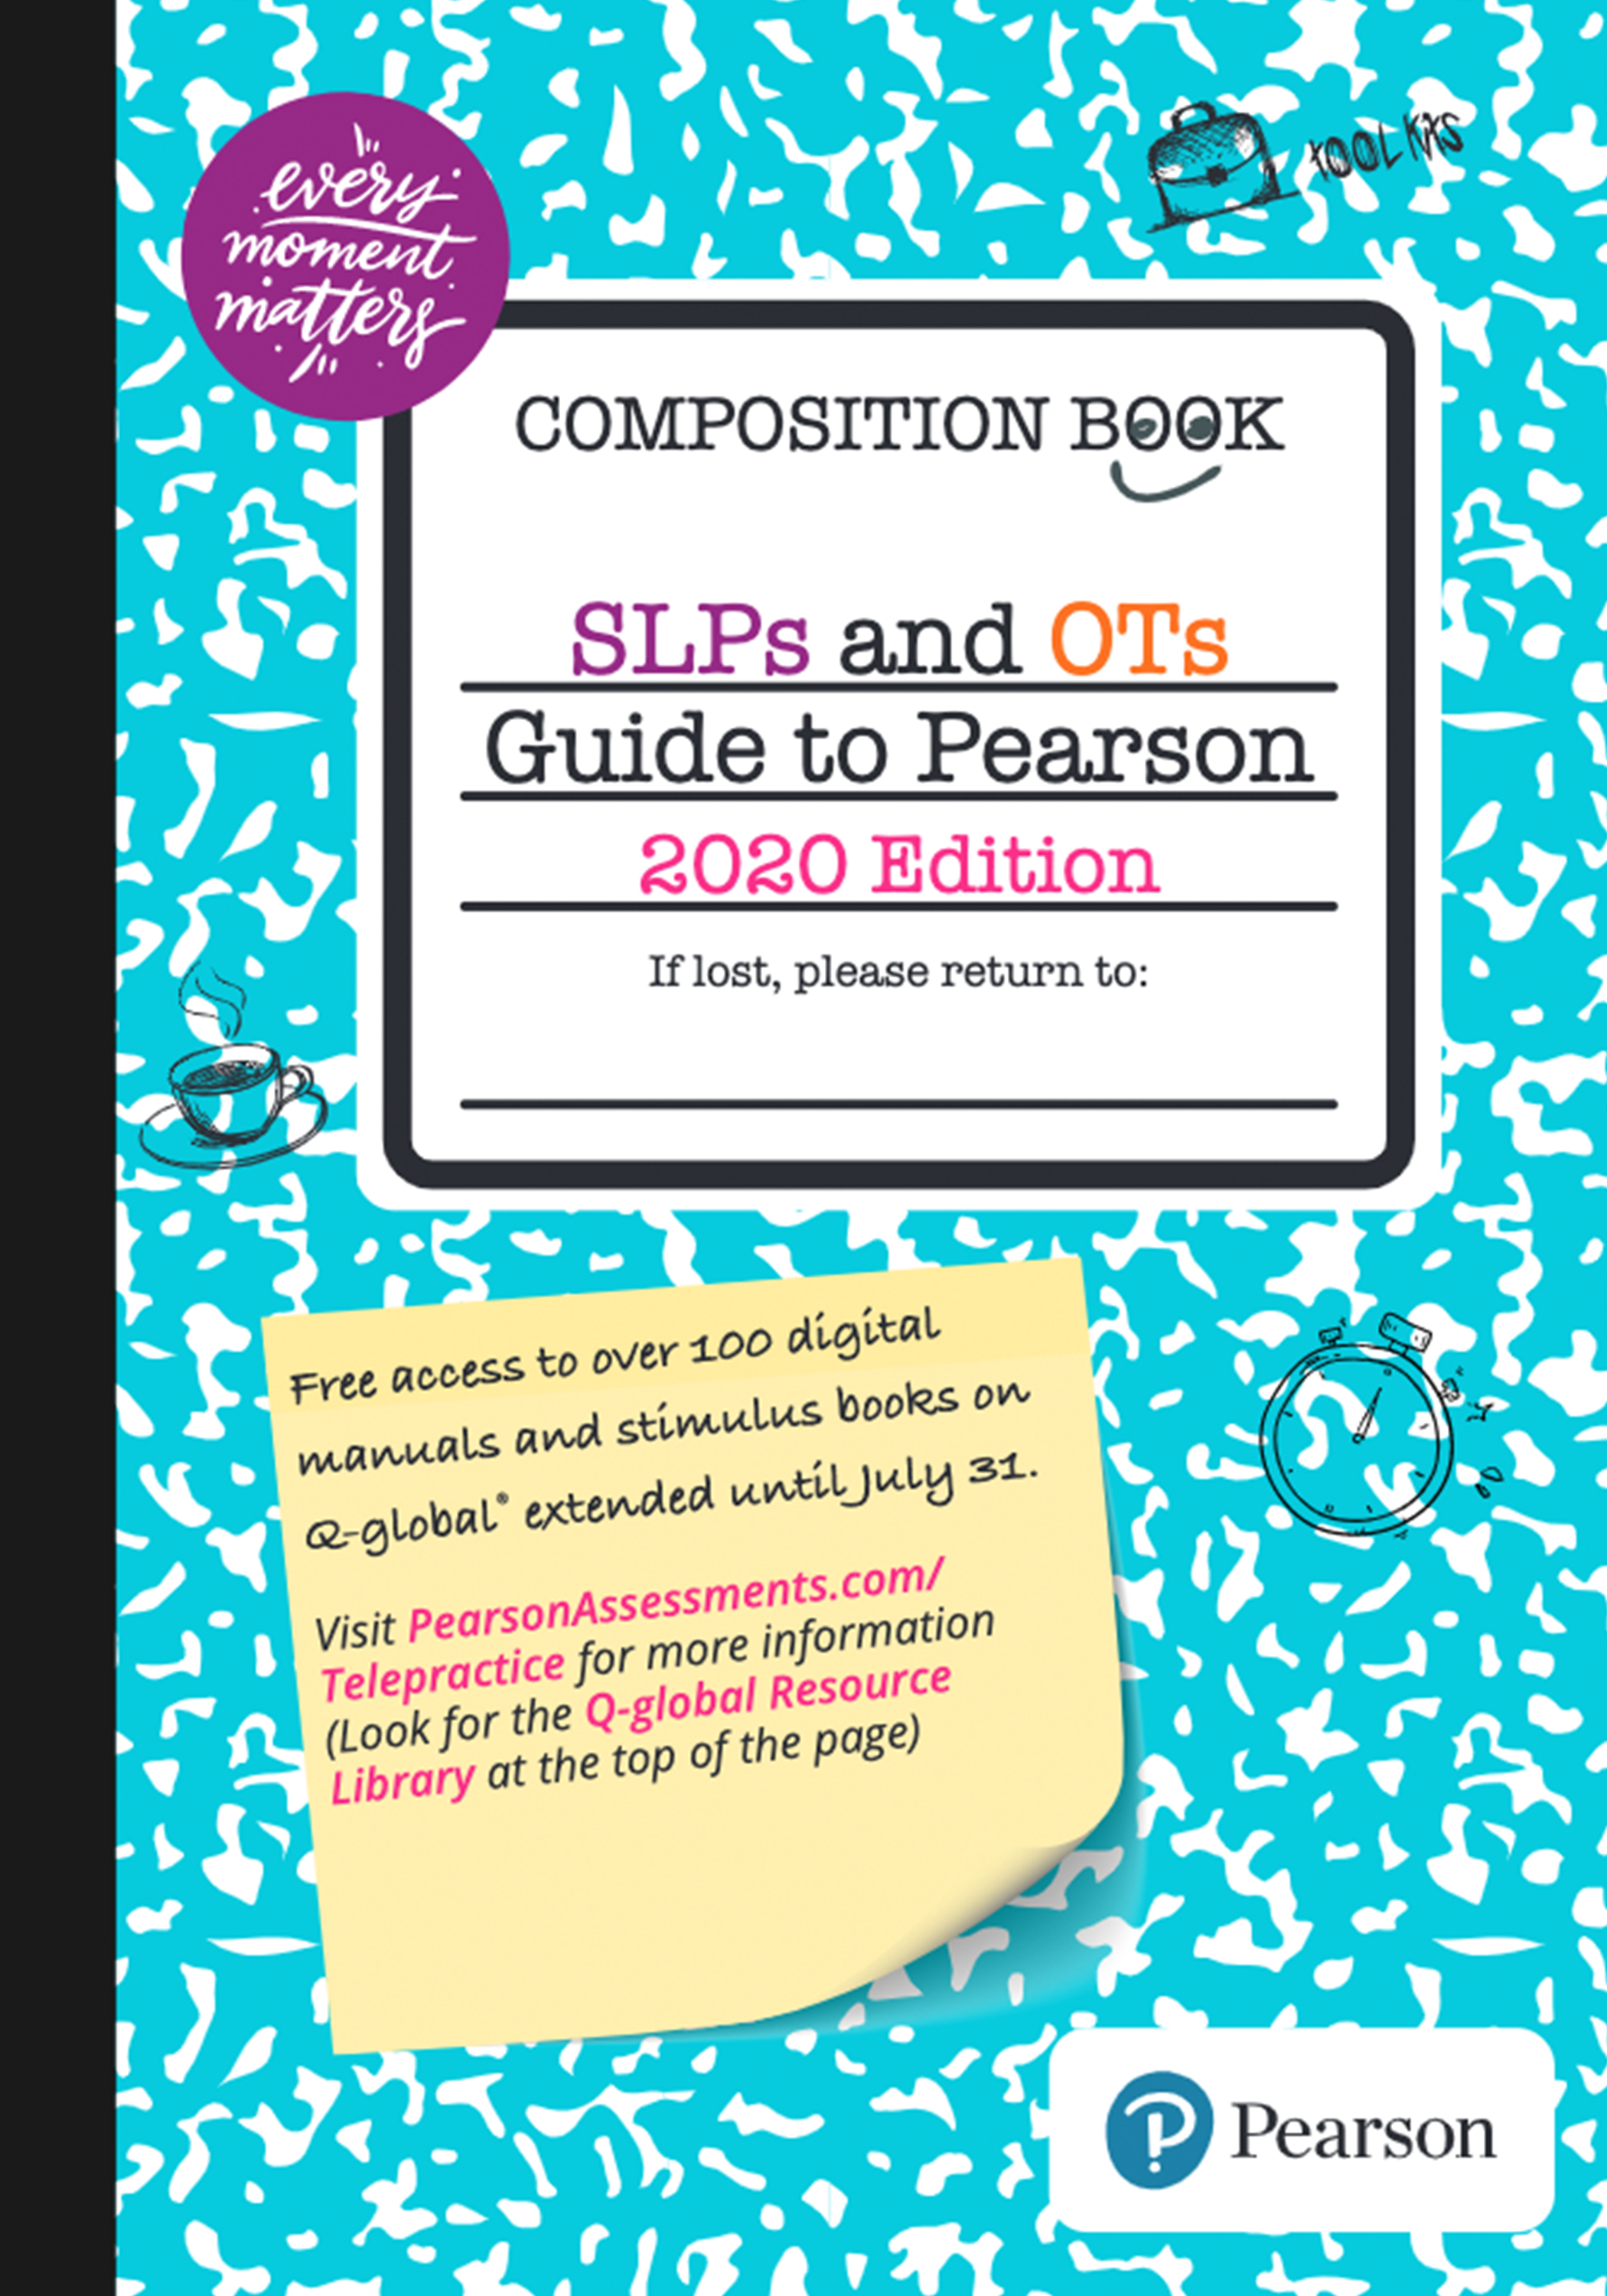 SLPs and OTs Guide to Pearson